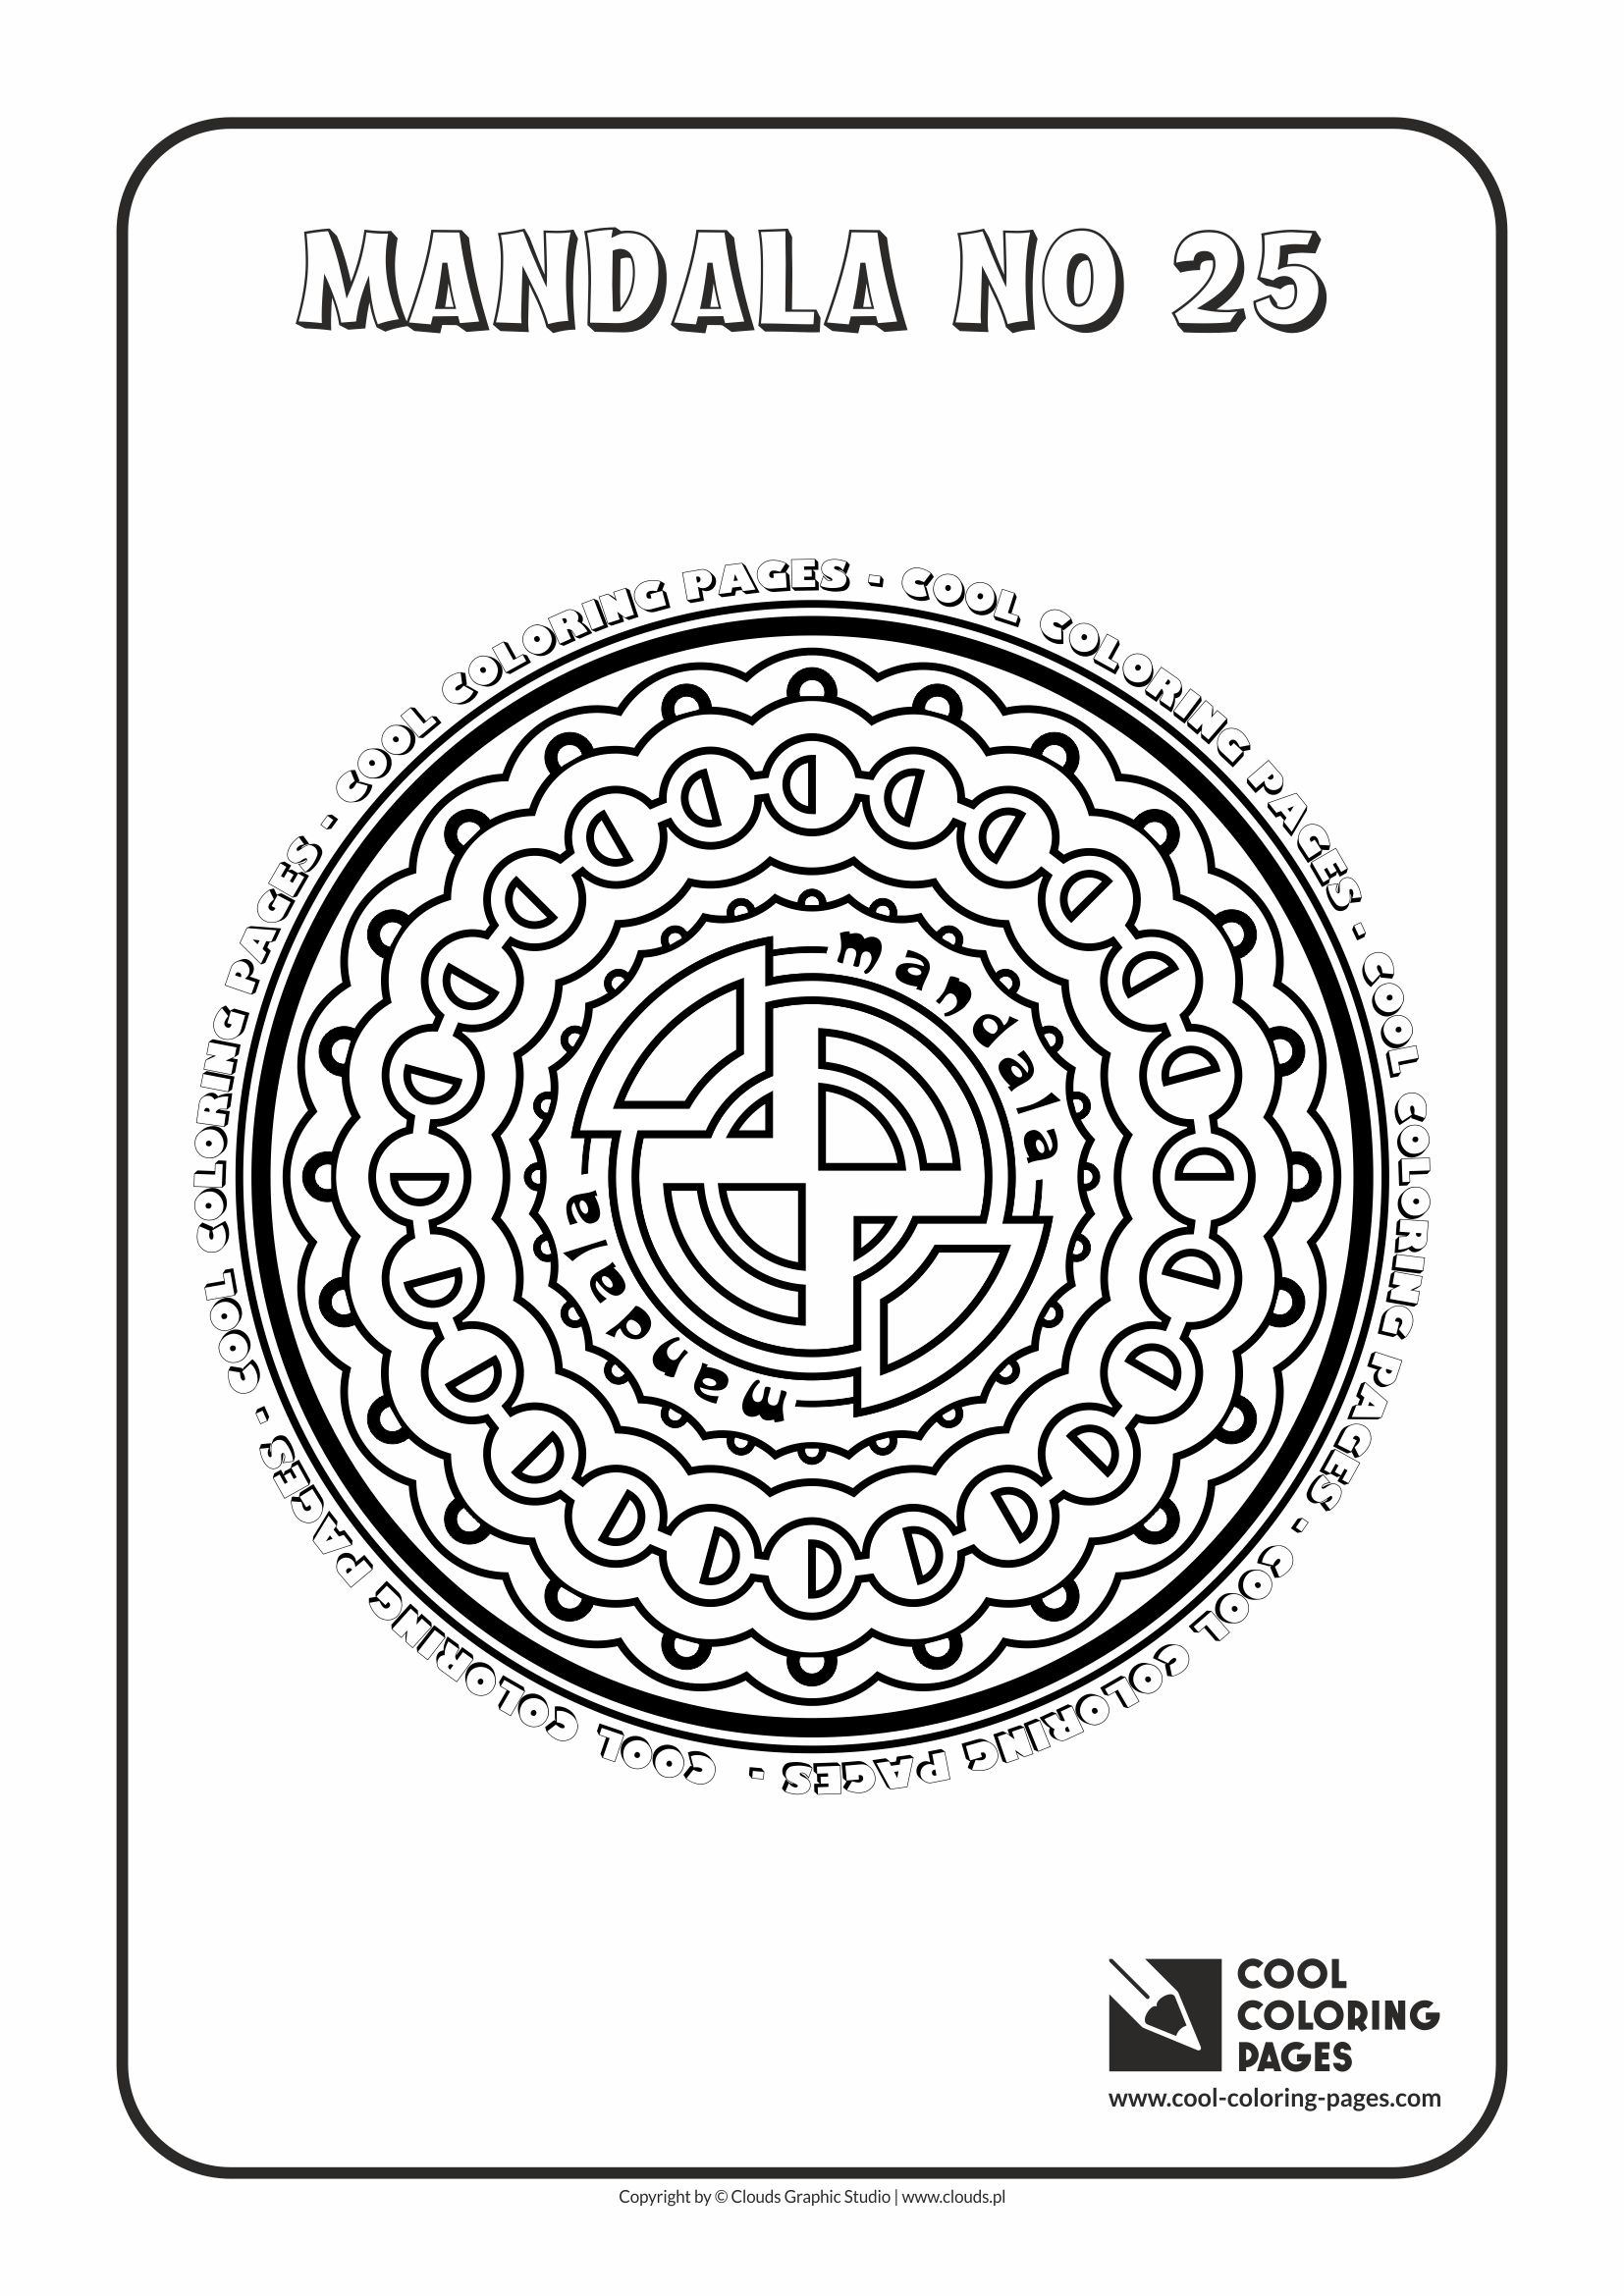 Cool Coloring Pages - Mandalas / Mandala no 25